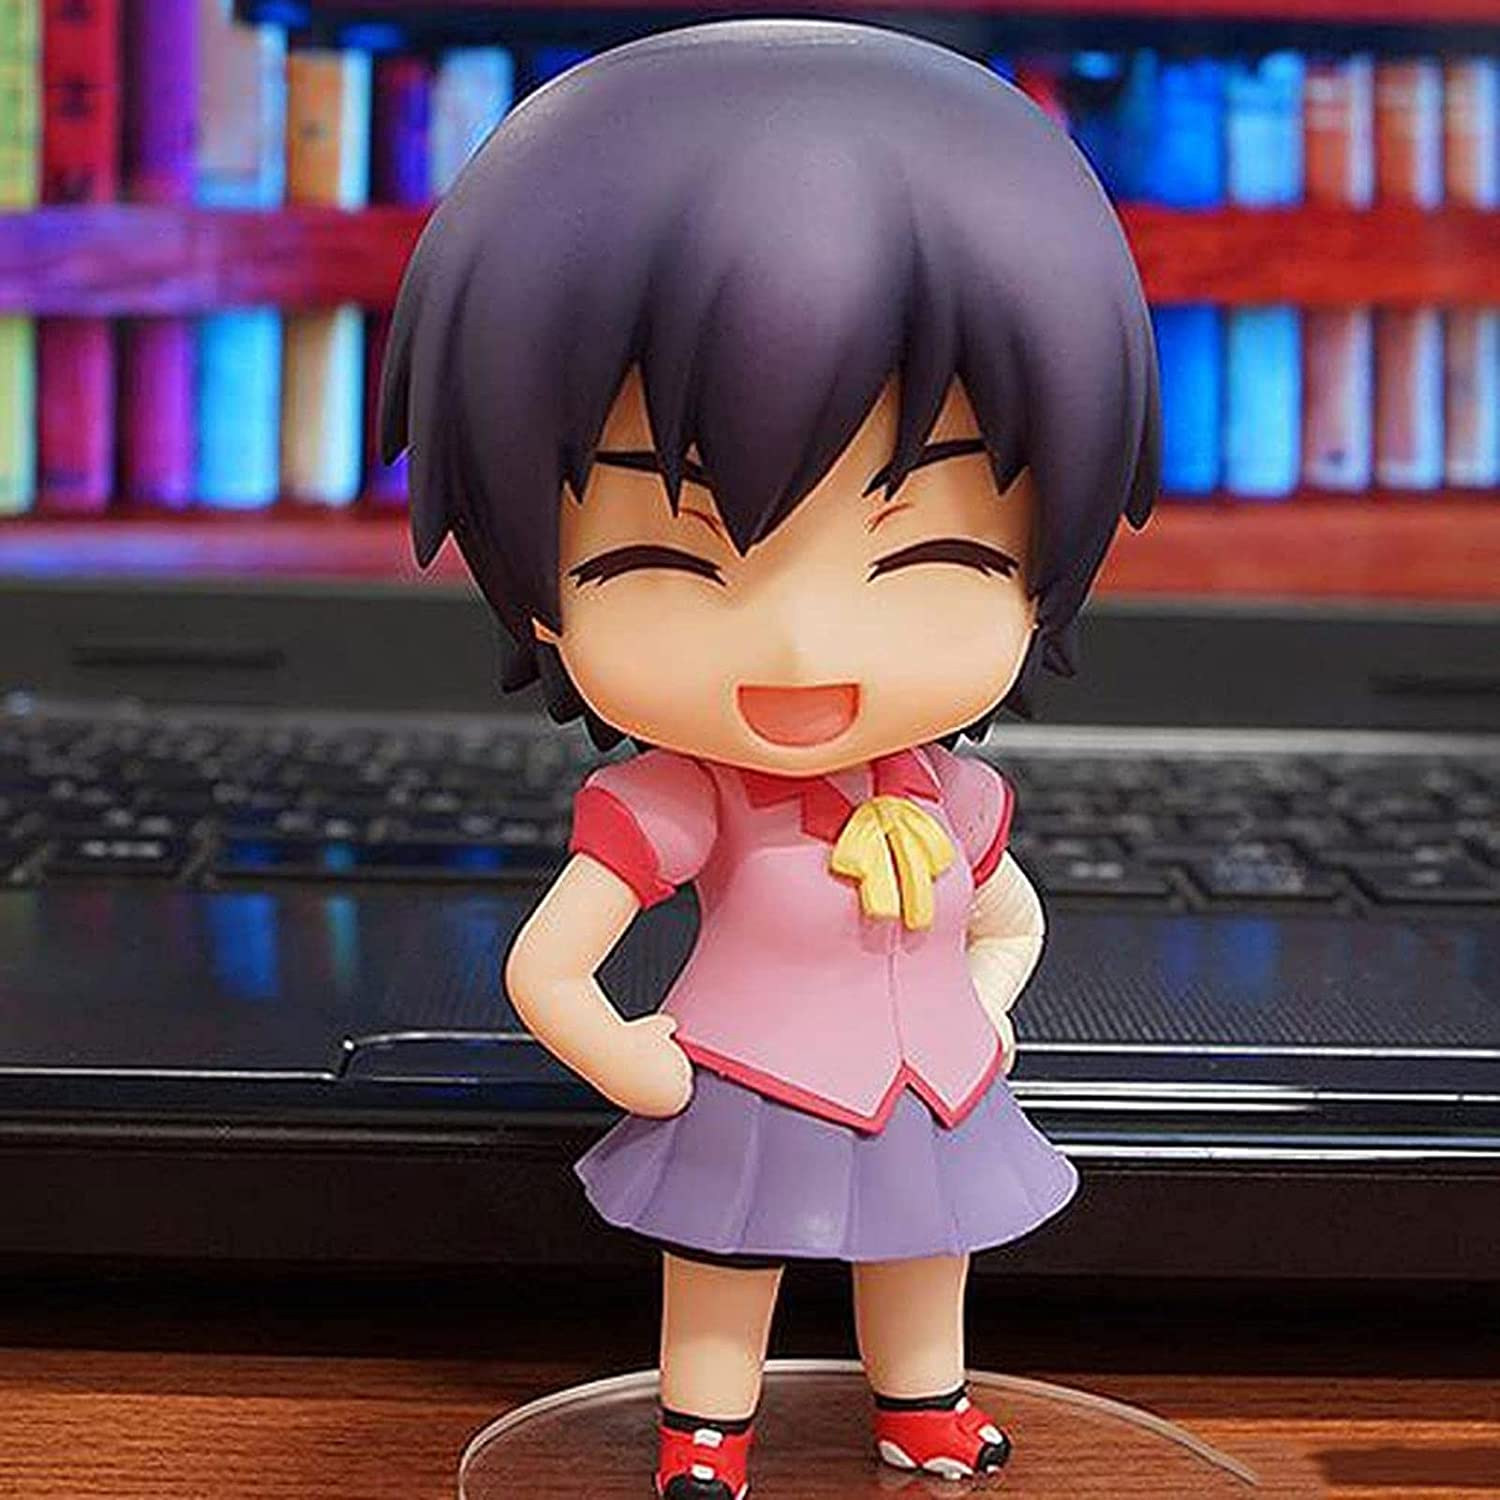 Movable Nendoroid Rapid rise Kanbaru Suruga OFFer The from Figure is